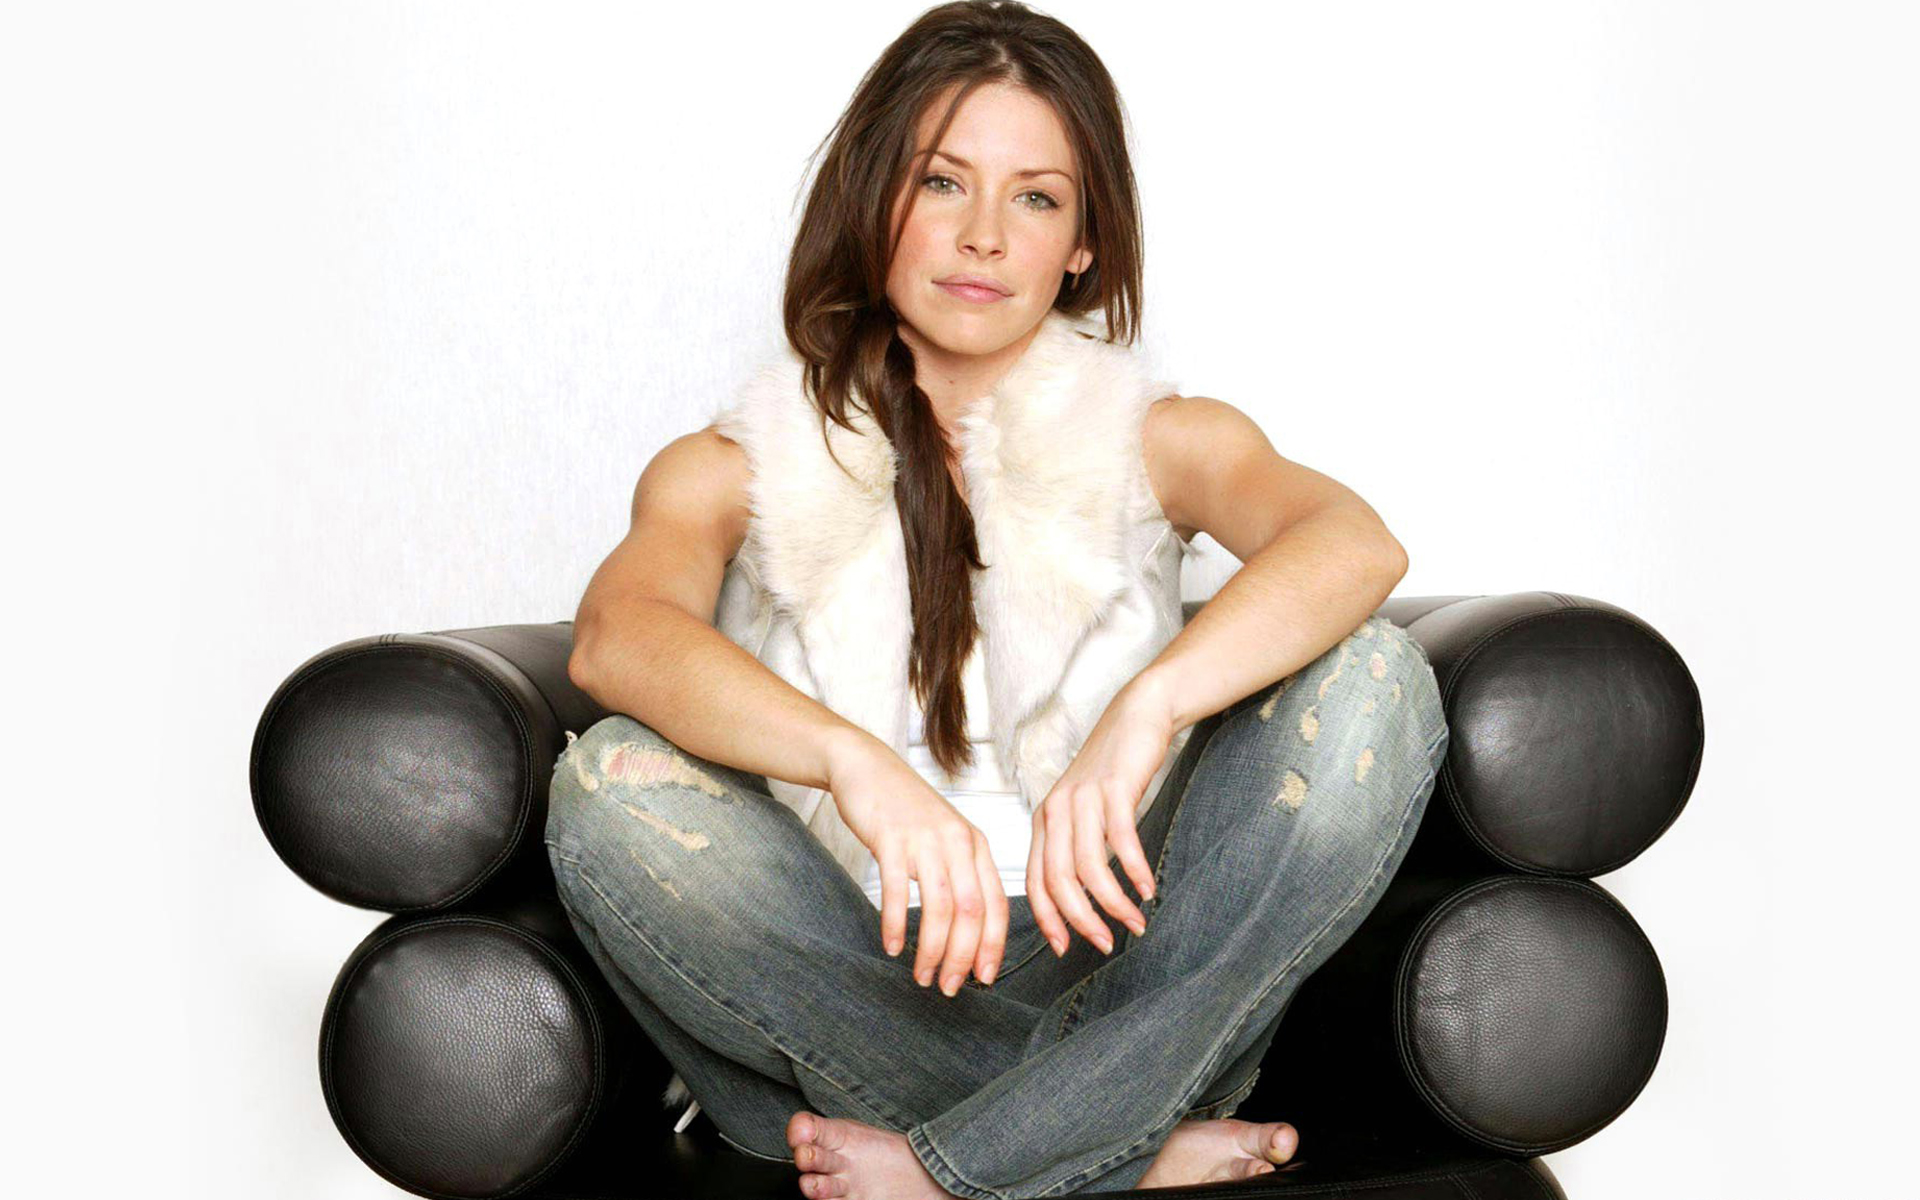 evangeline lilly desktop wallpaper 55289